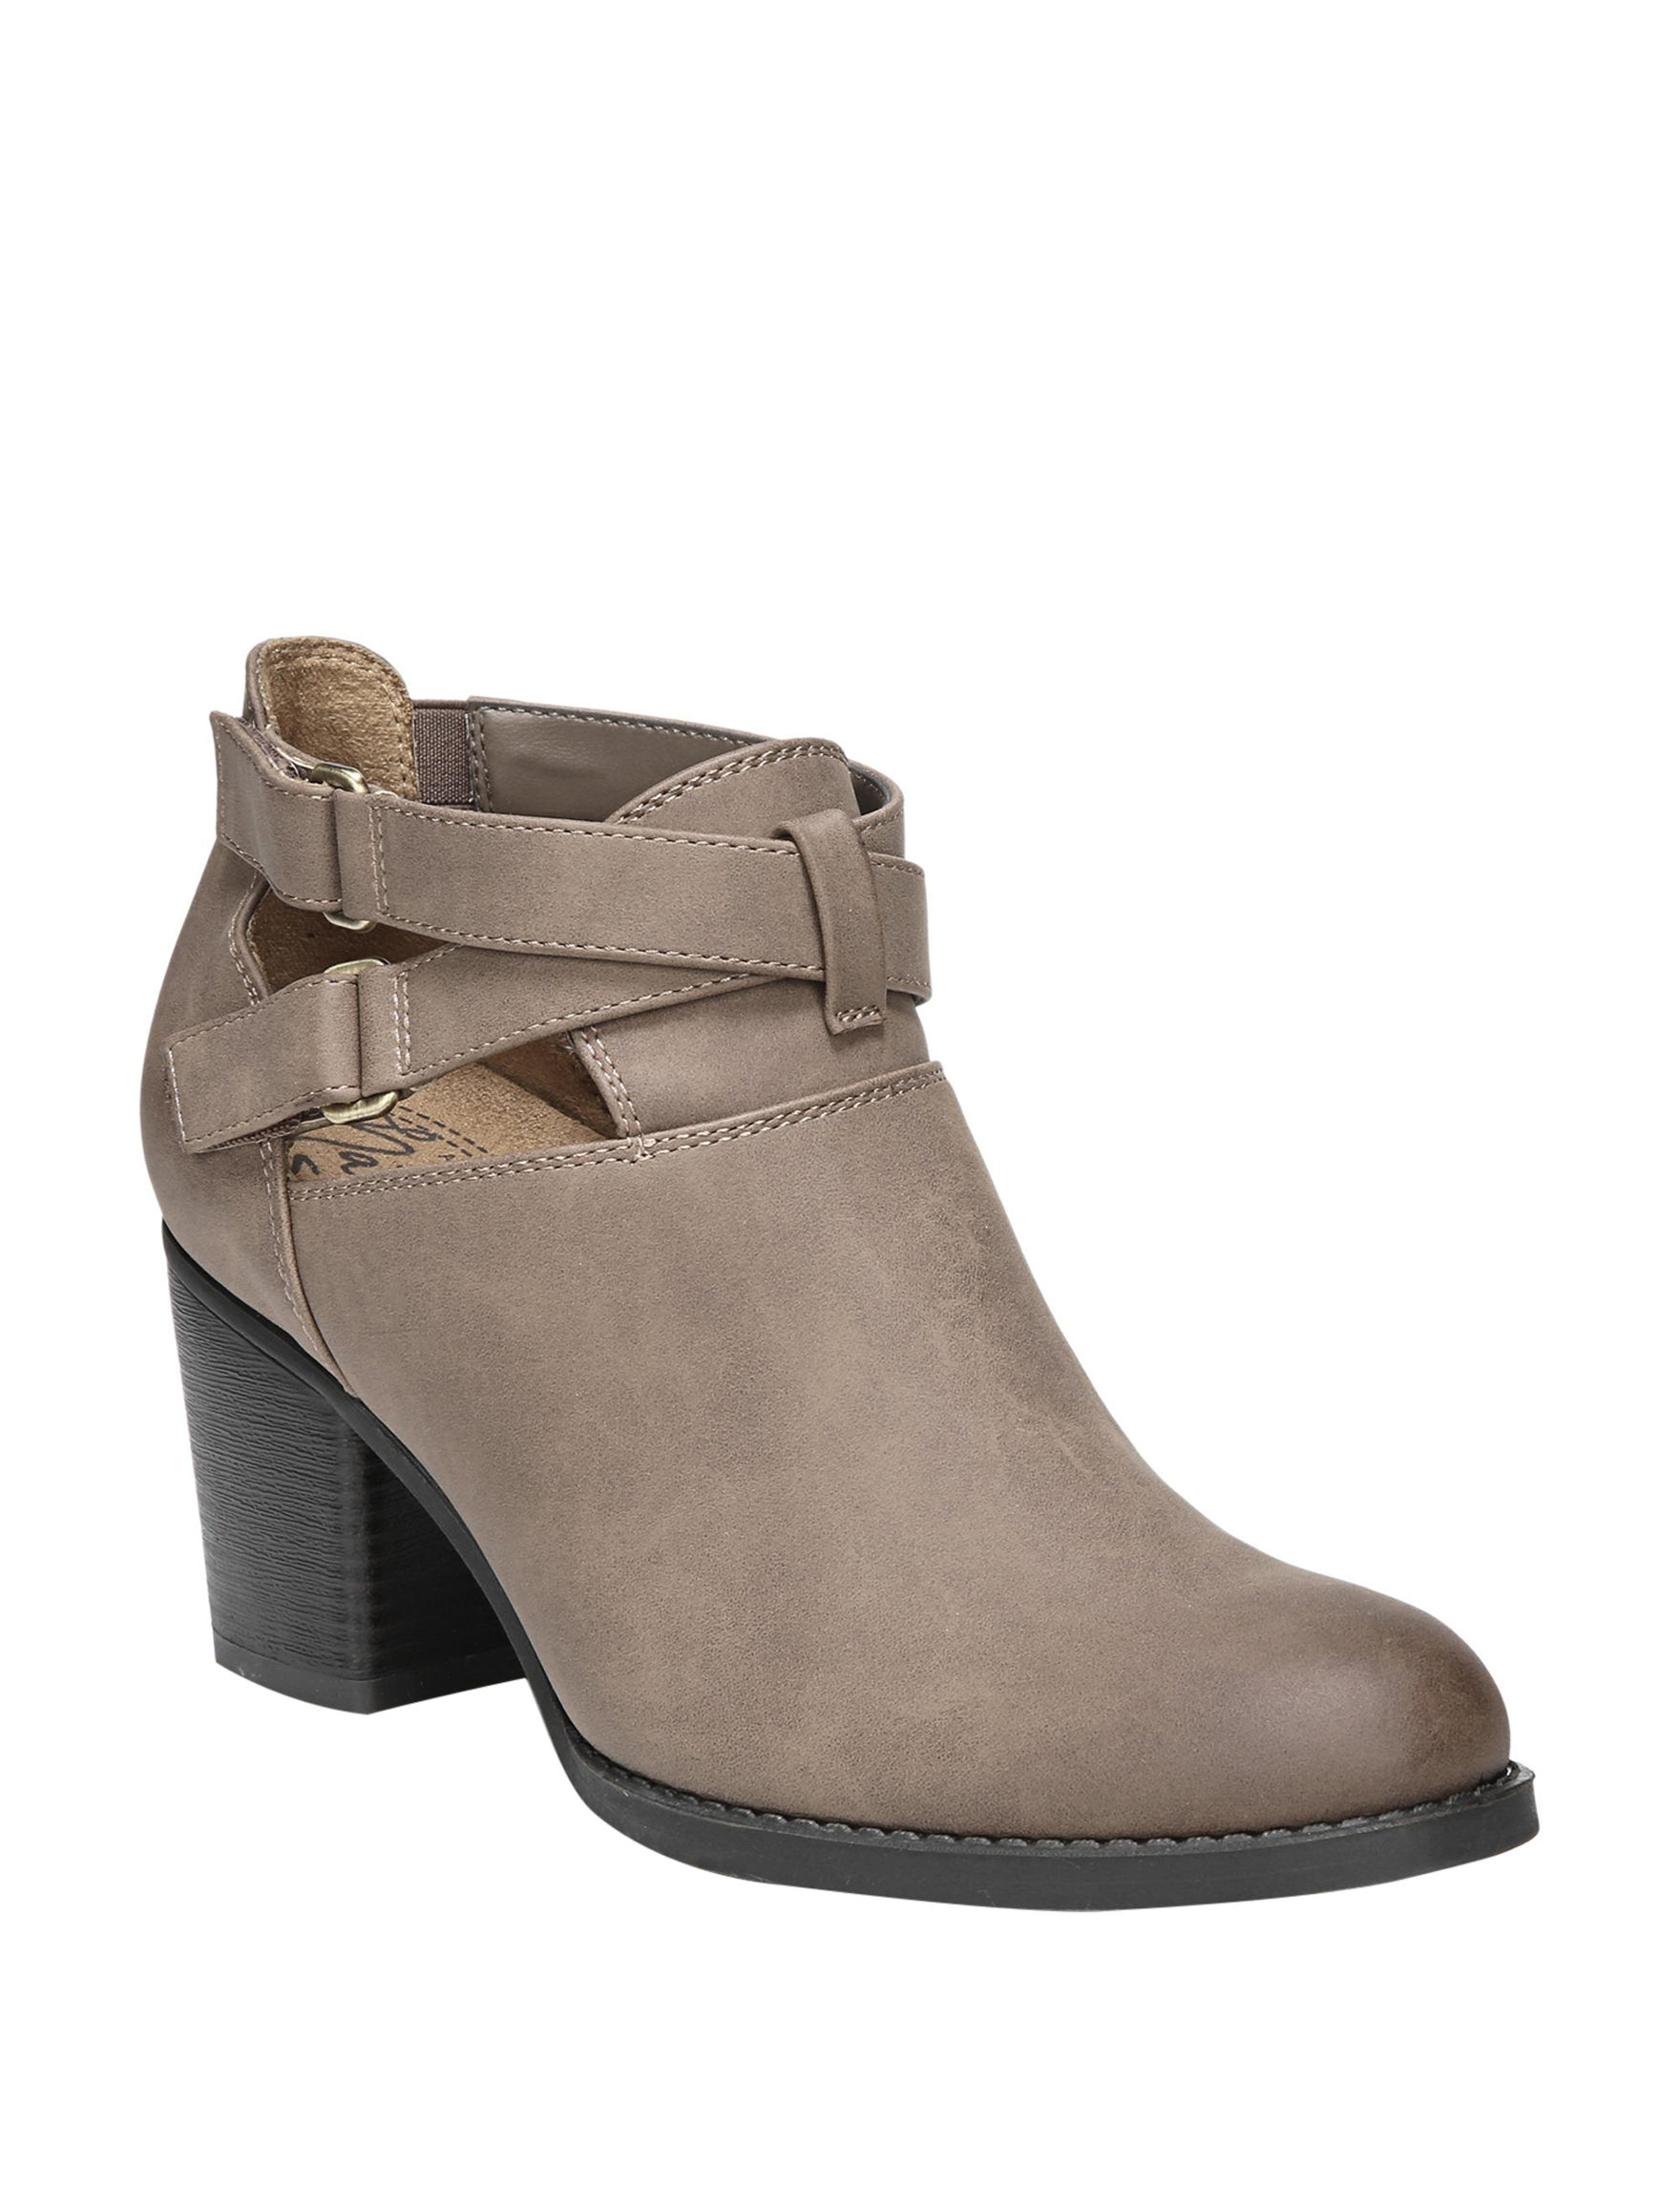 Natural Soul Tan Ankle Boots & Booties